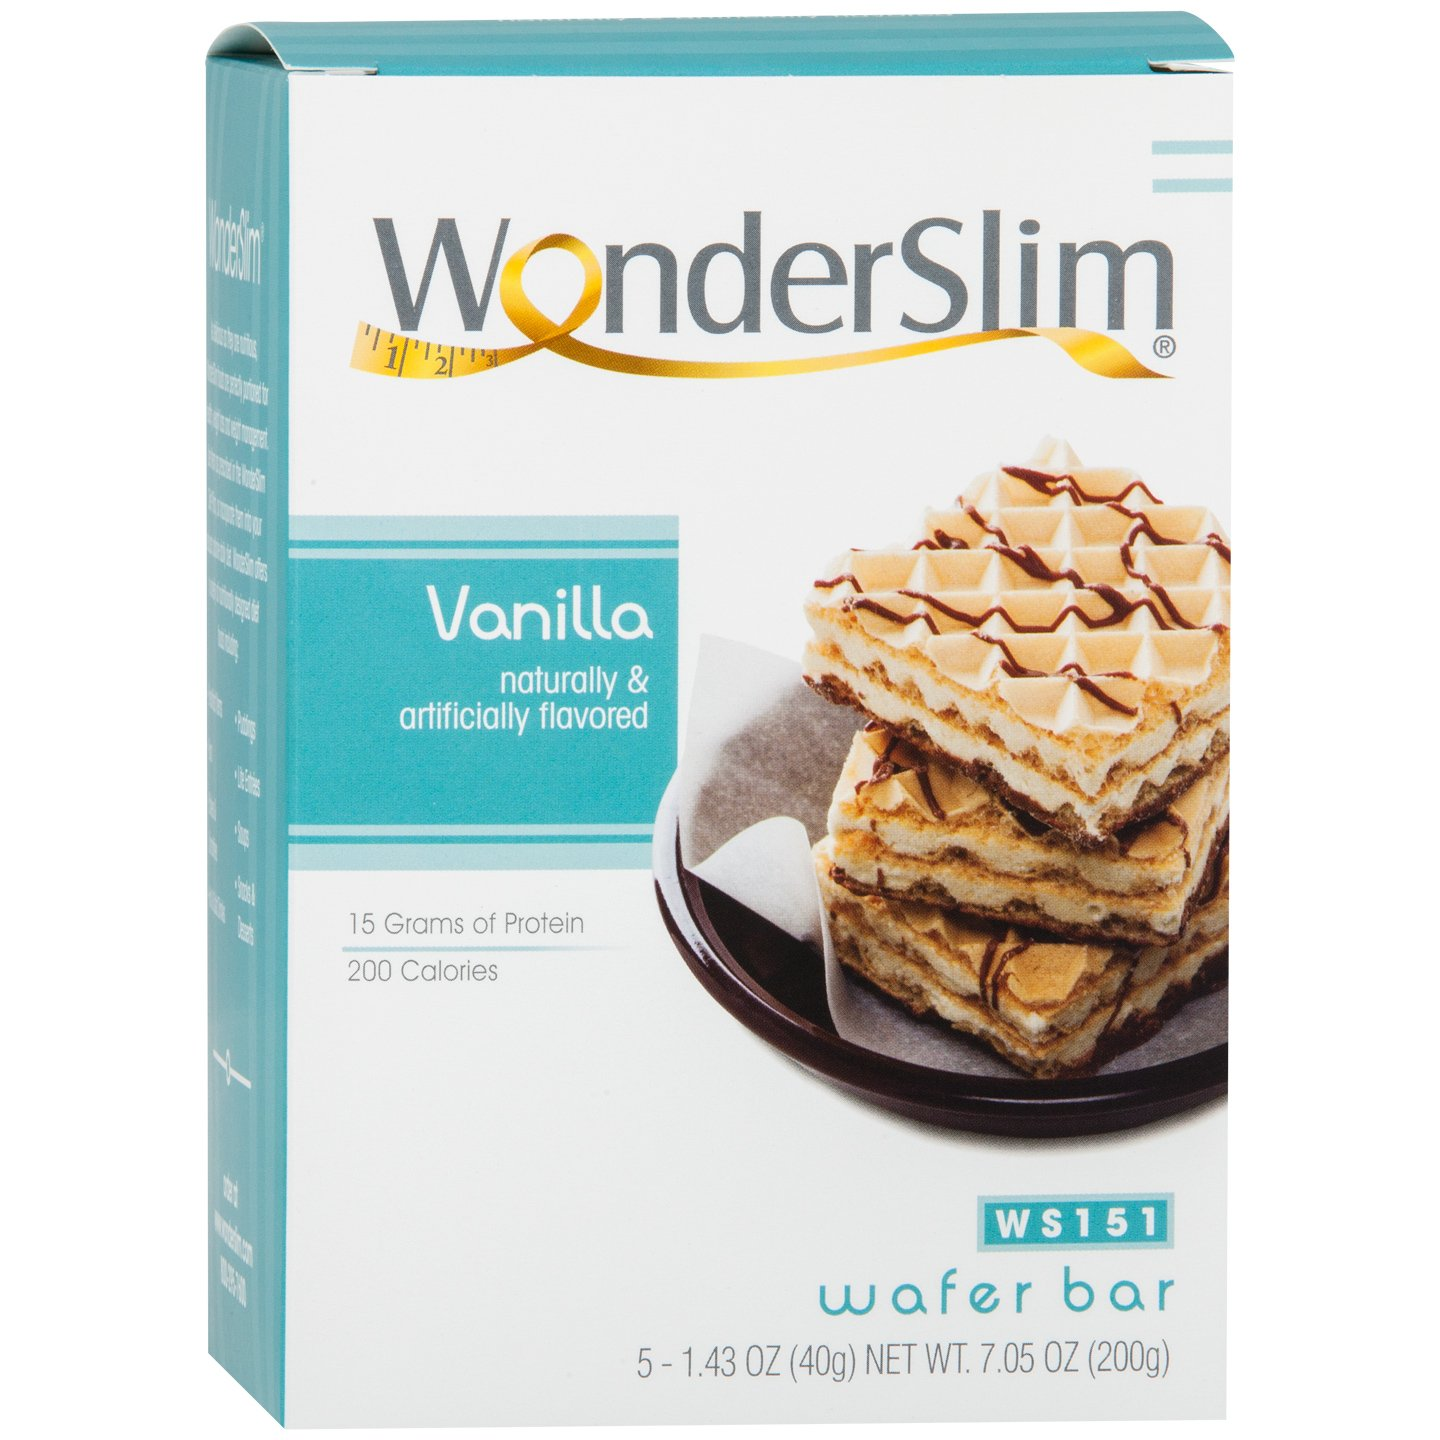 WonderSlim Weight Loss Meal Replacement Wafer Bar - High Protein, Trans Fat Free, Aspartame Free, Cholesterol Free - Vanilla, 1 Box (5 ct)